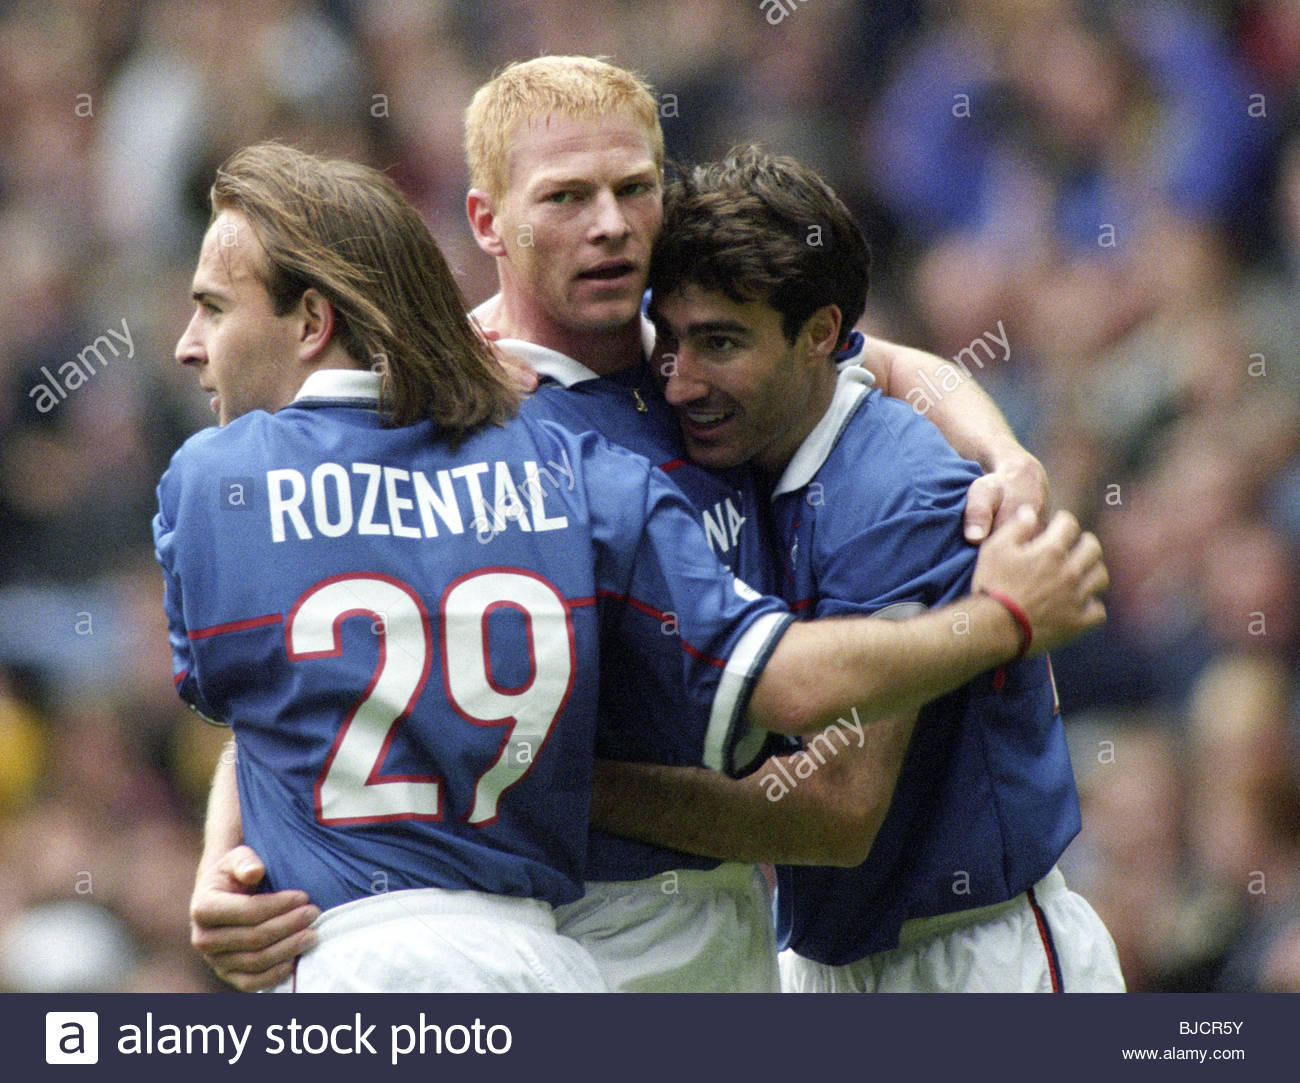 04/10/98 SPL RANGERS v DUNDEE (1-0) IBROX - GLASGOW Jorg Albertz (centre) celebrates his goal with Rangers team Stock Photo